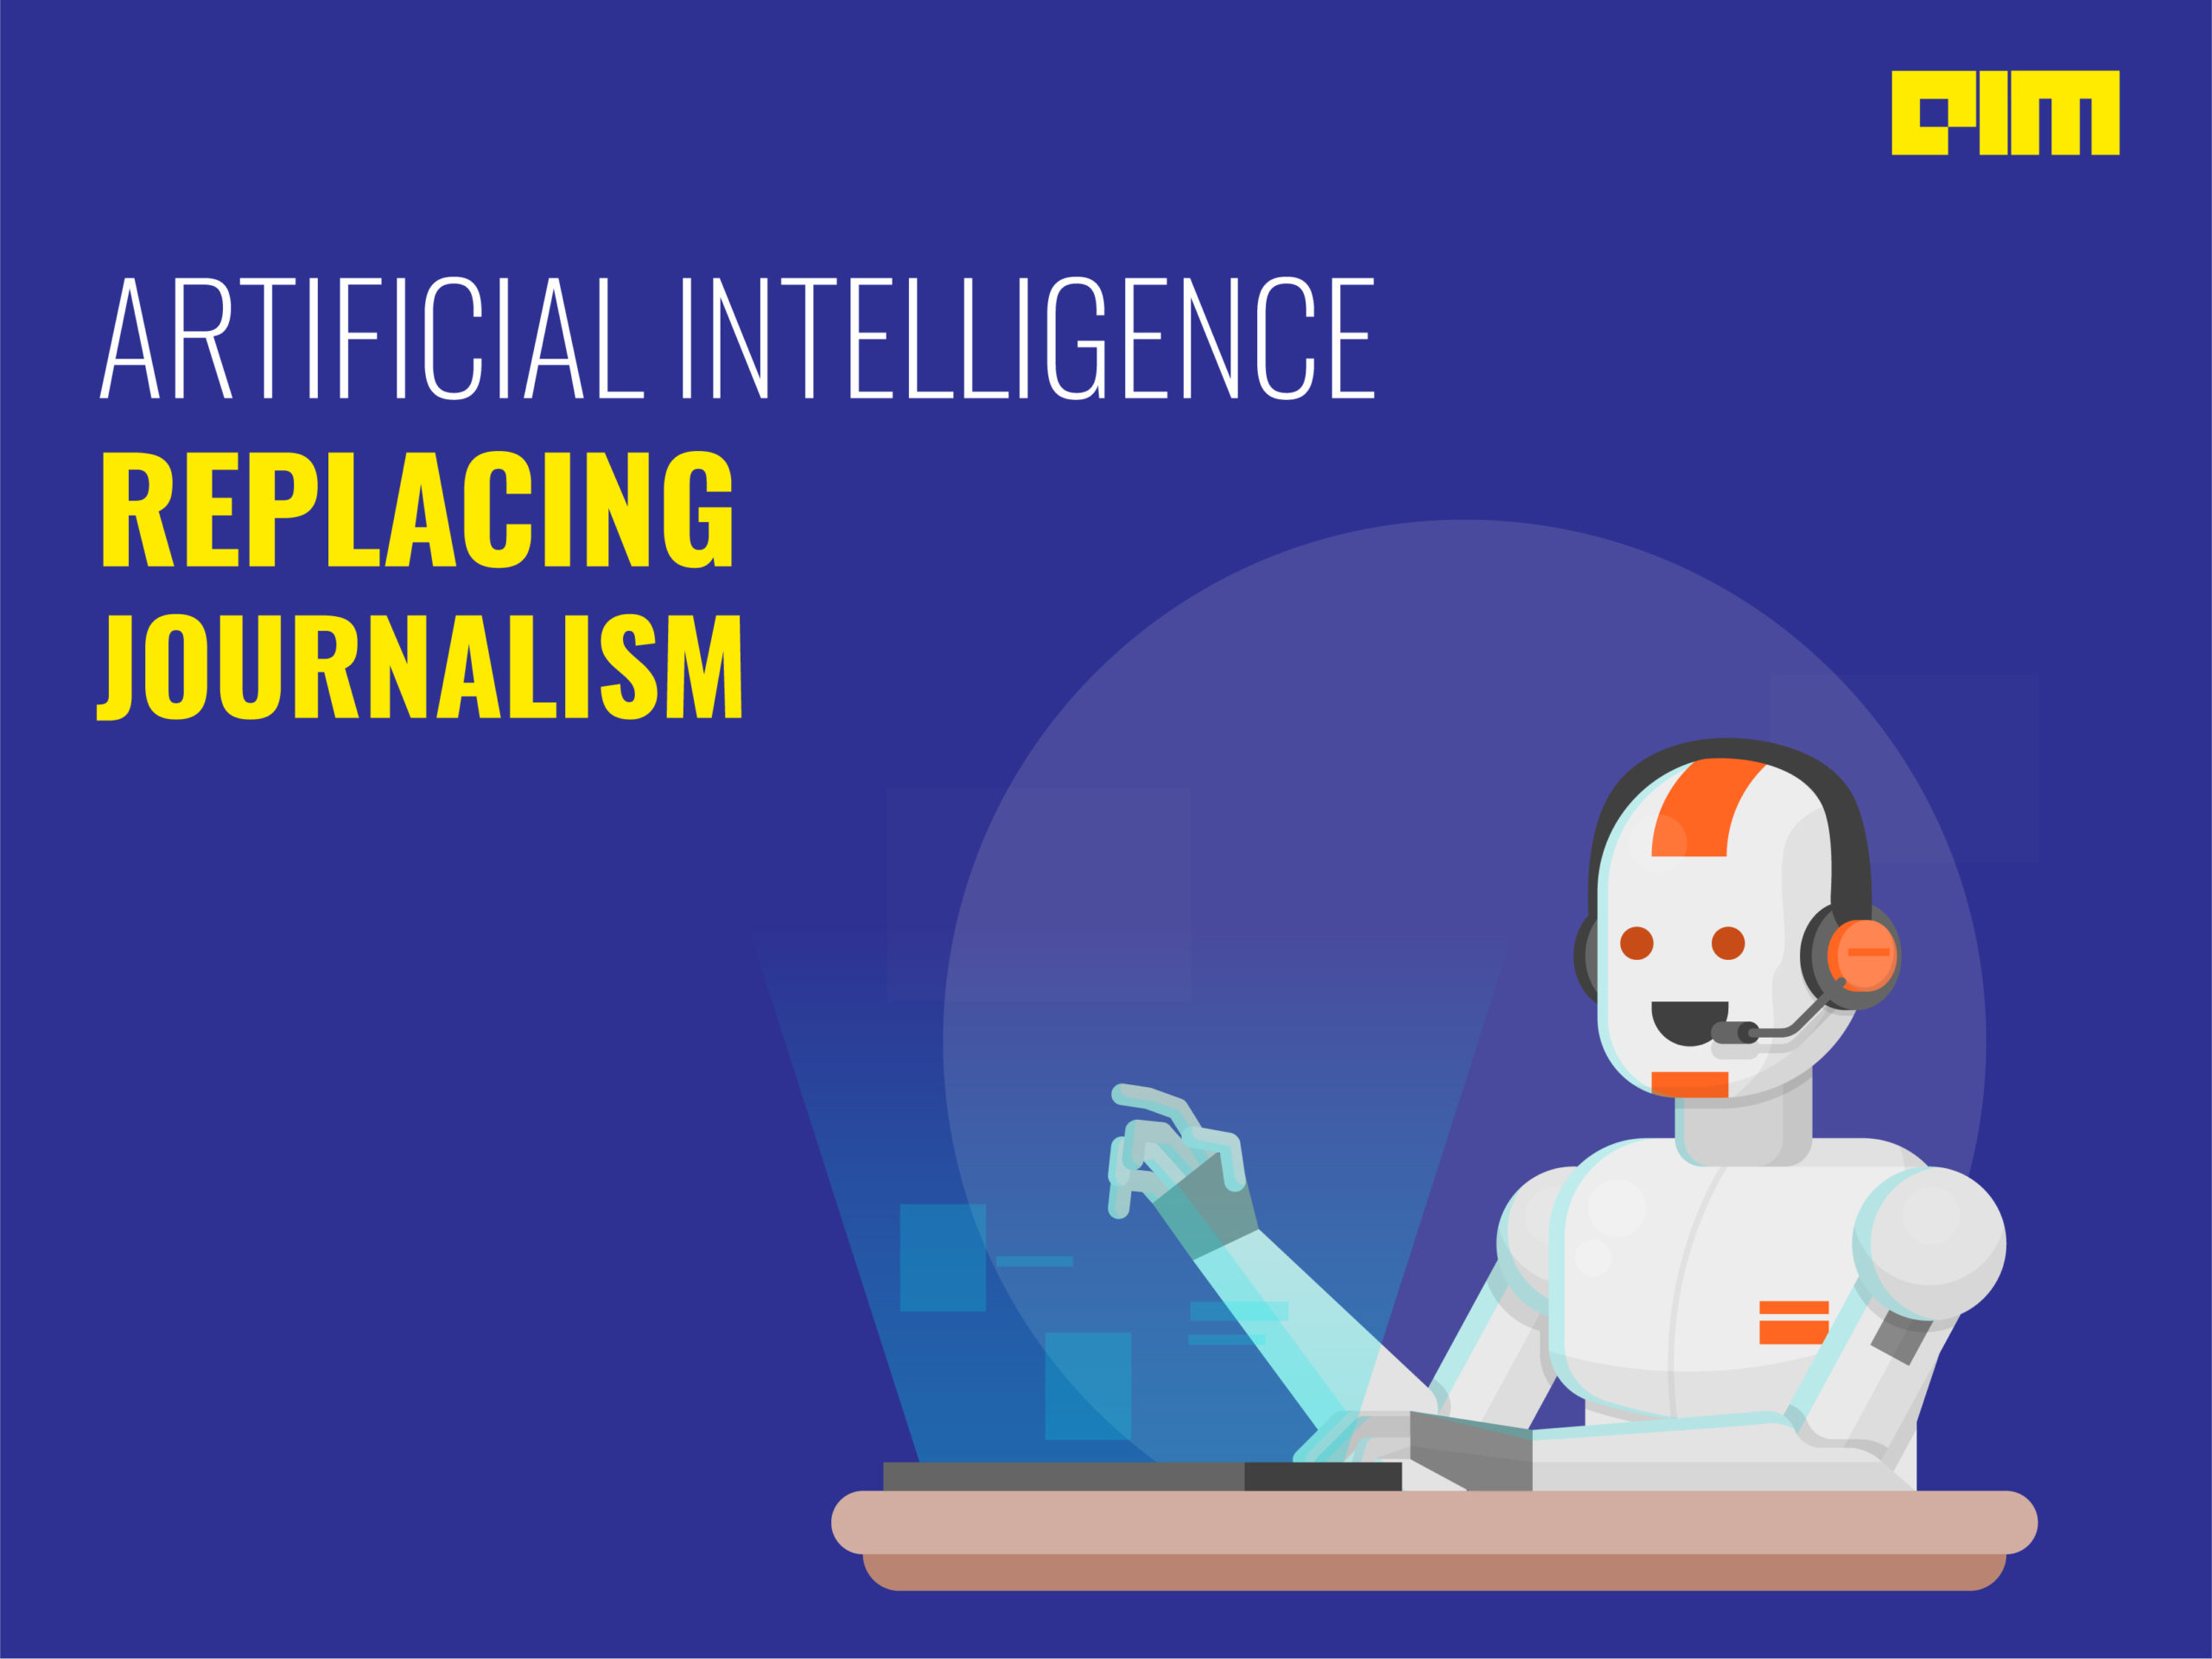 Microsoft Replaces Journalists With AI. Can We Rely On AI For News?